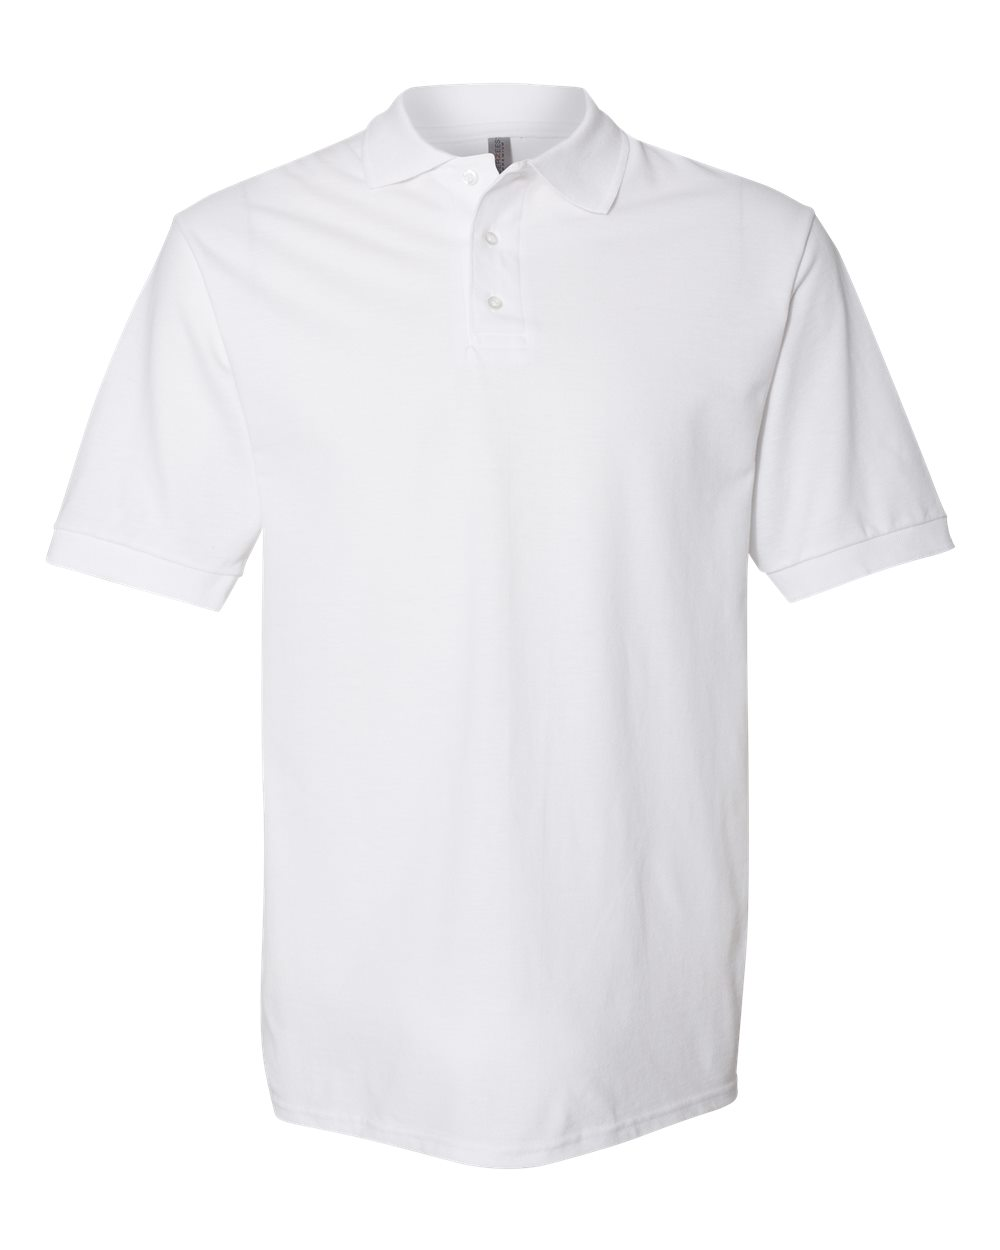 100% Ringspun Cotton Piqu?? Sport Shirt-JERZEES